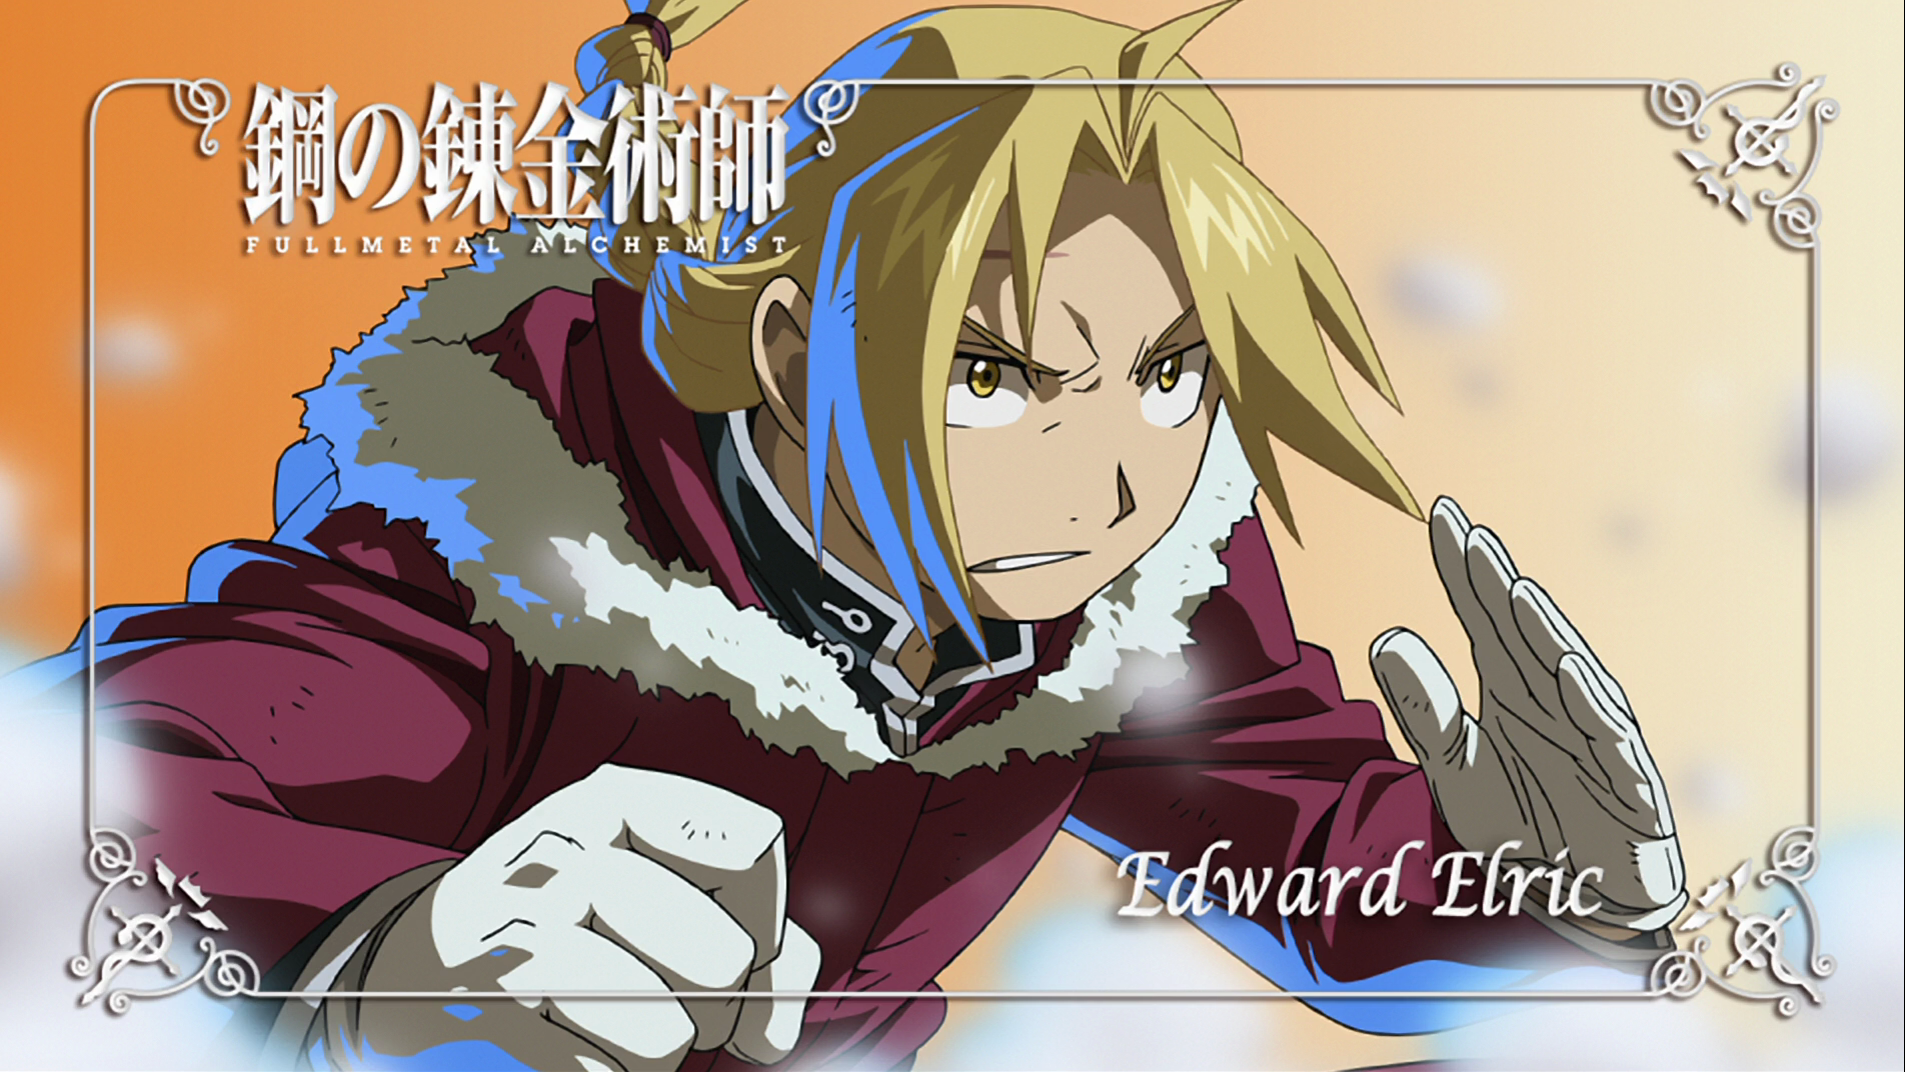 Anime - FullMetal Alchemist  Edward Elric Wallpaper